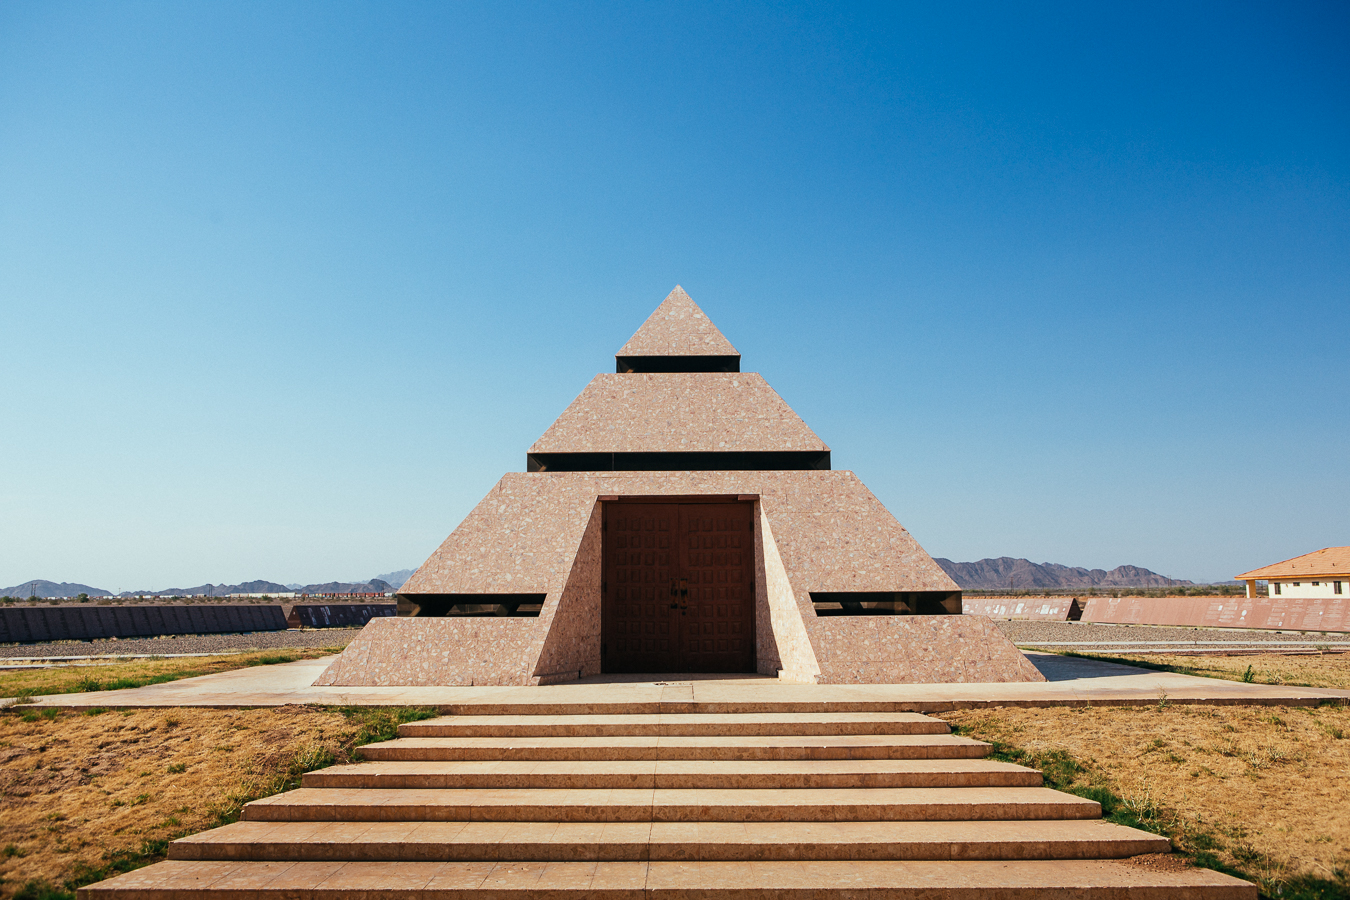 This pyramid houses the self-proclaimed 'Center of the World' point. Nobody was around to unlock the door, oh well close enough.